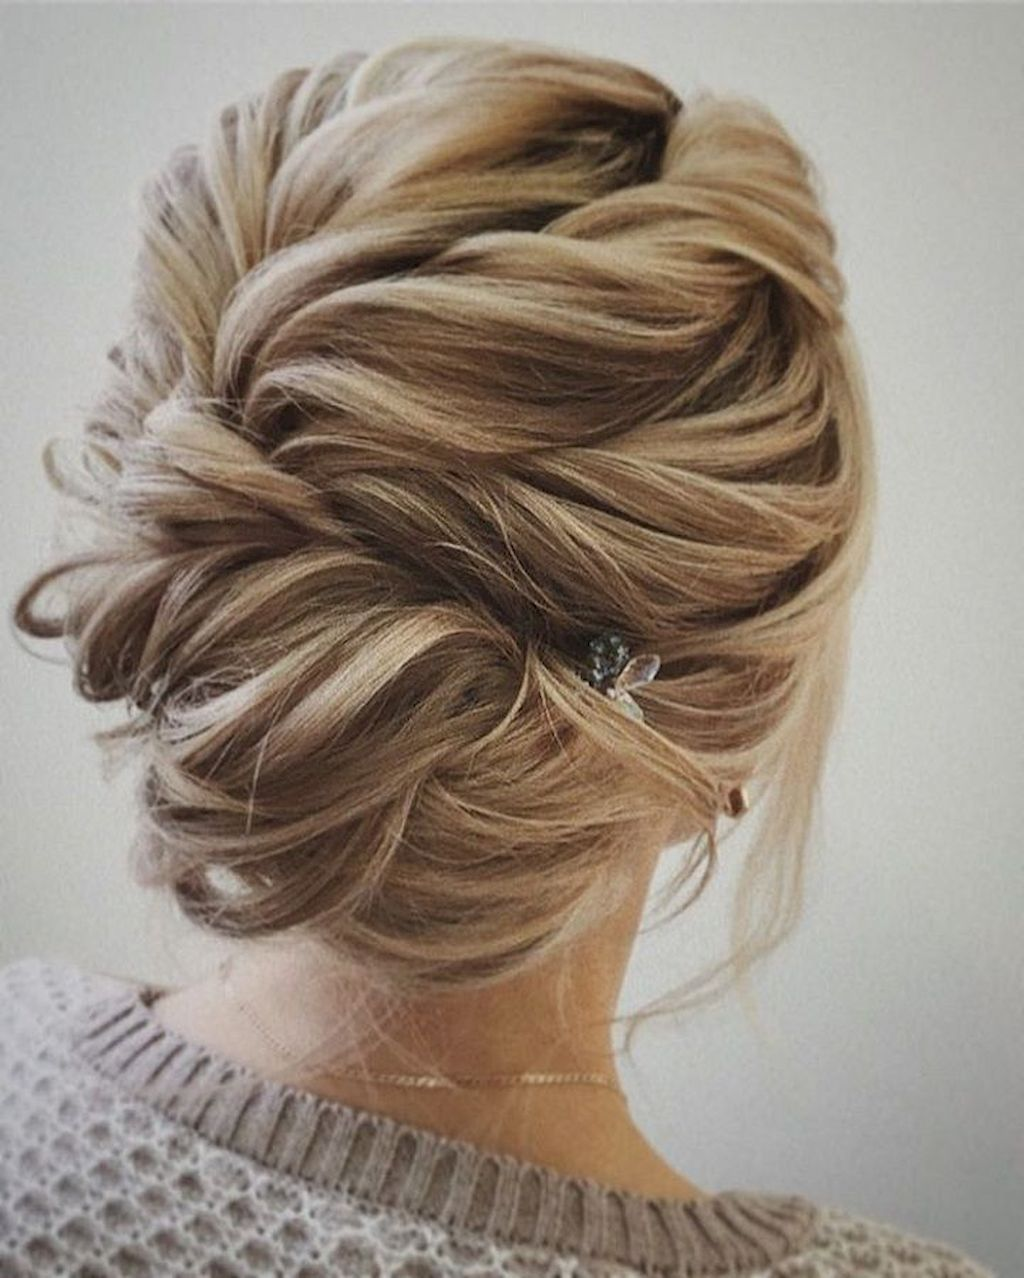 Pin by frances morse on women hairstyles pinterest hair styles